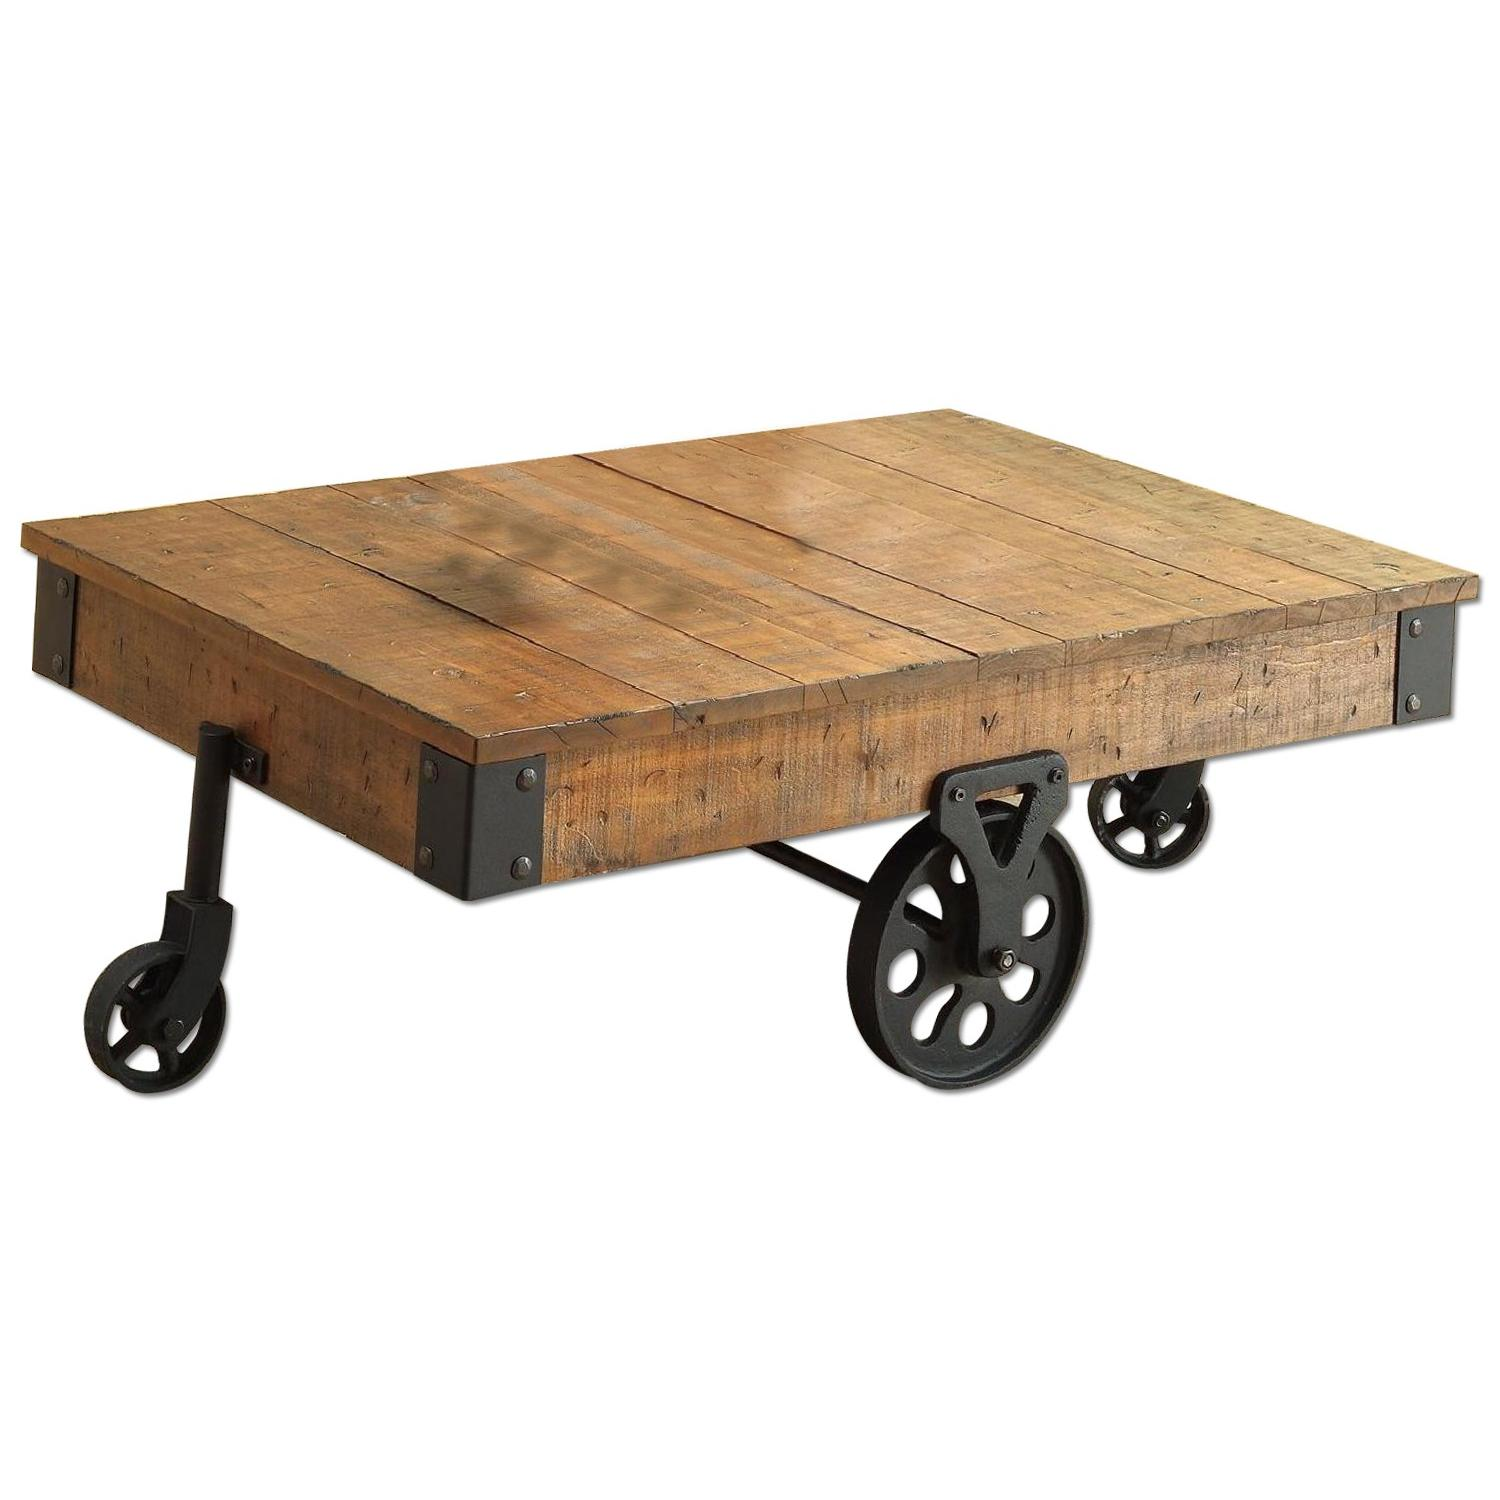 Whimsical Distressed Country Wagon Coffee Table AptDeco : 1500 1500 frame 0 from www.aptdeco.com size 1500 x 1500 jpeg 128kB